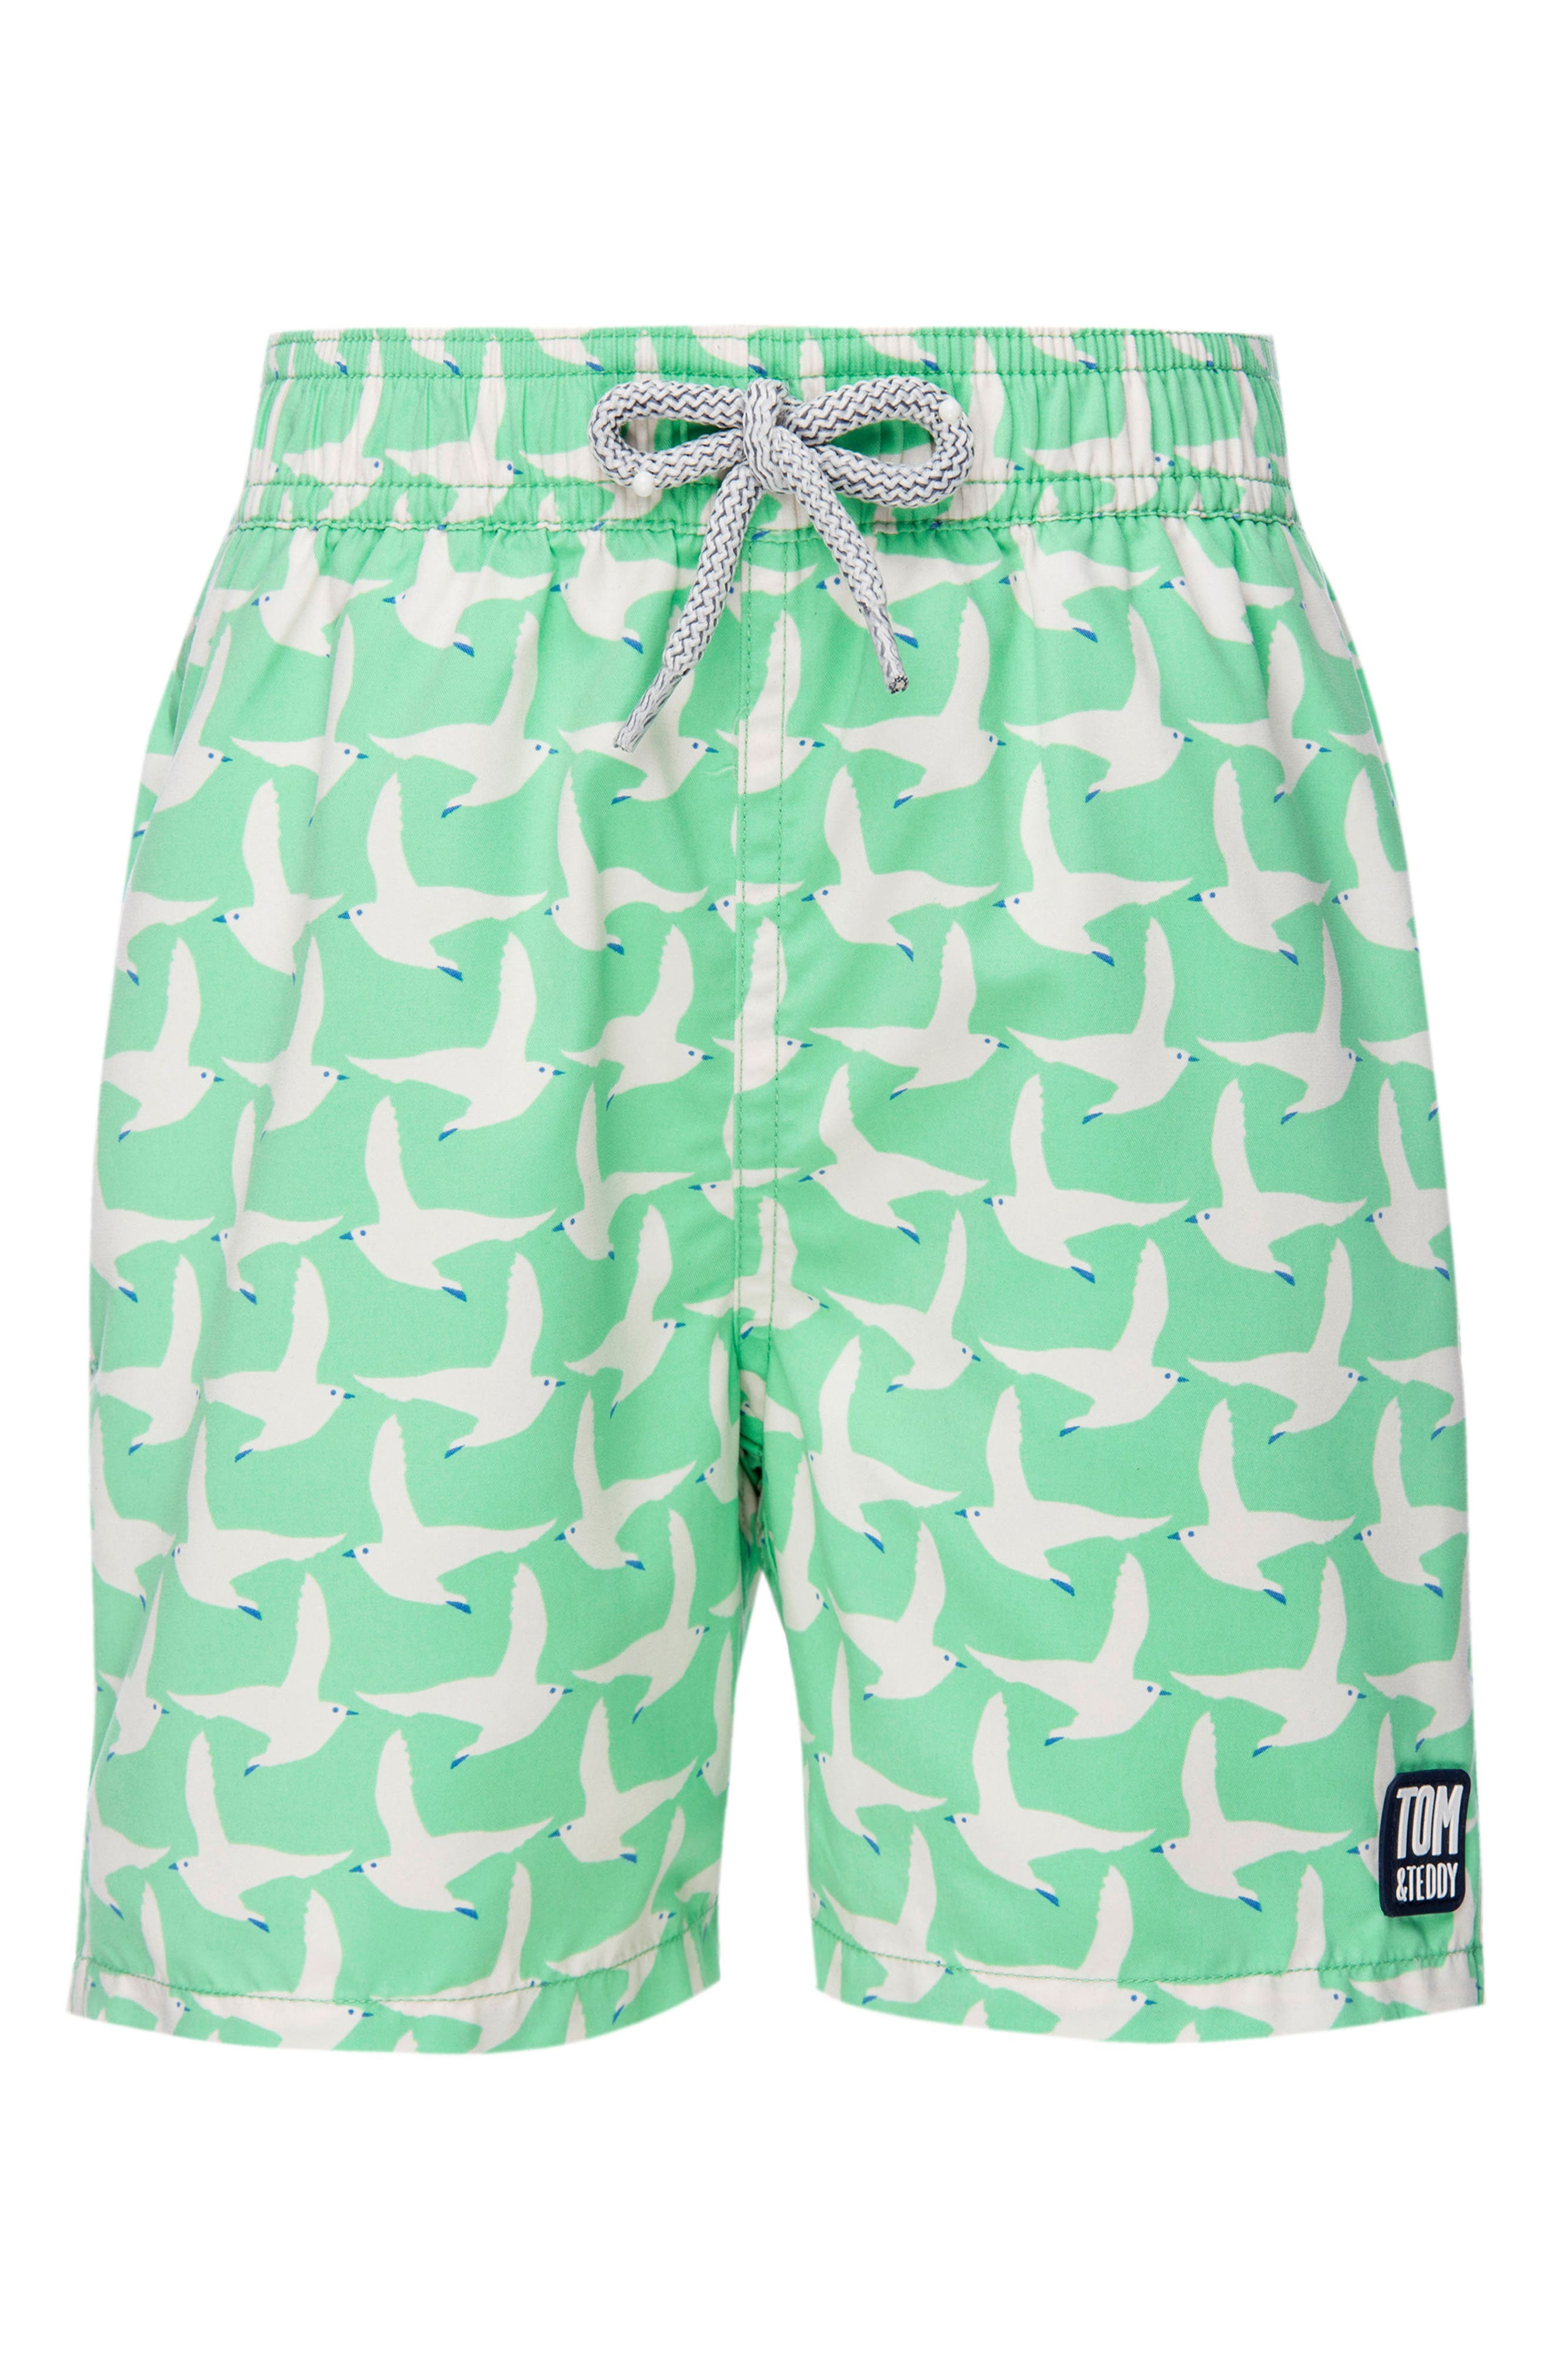 Seagull Swim Trunks,                         Main,                         color, Spring Green